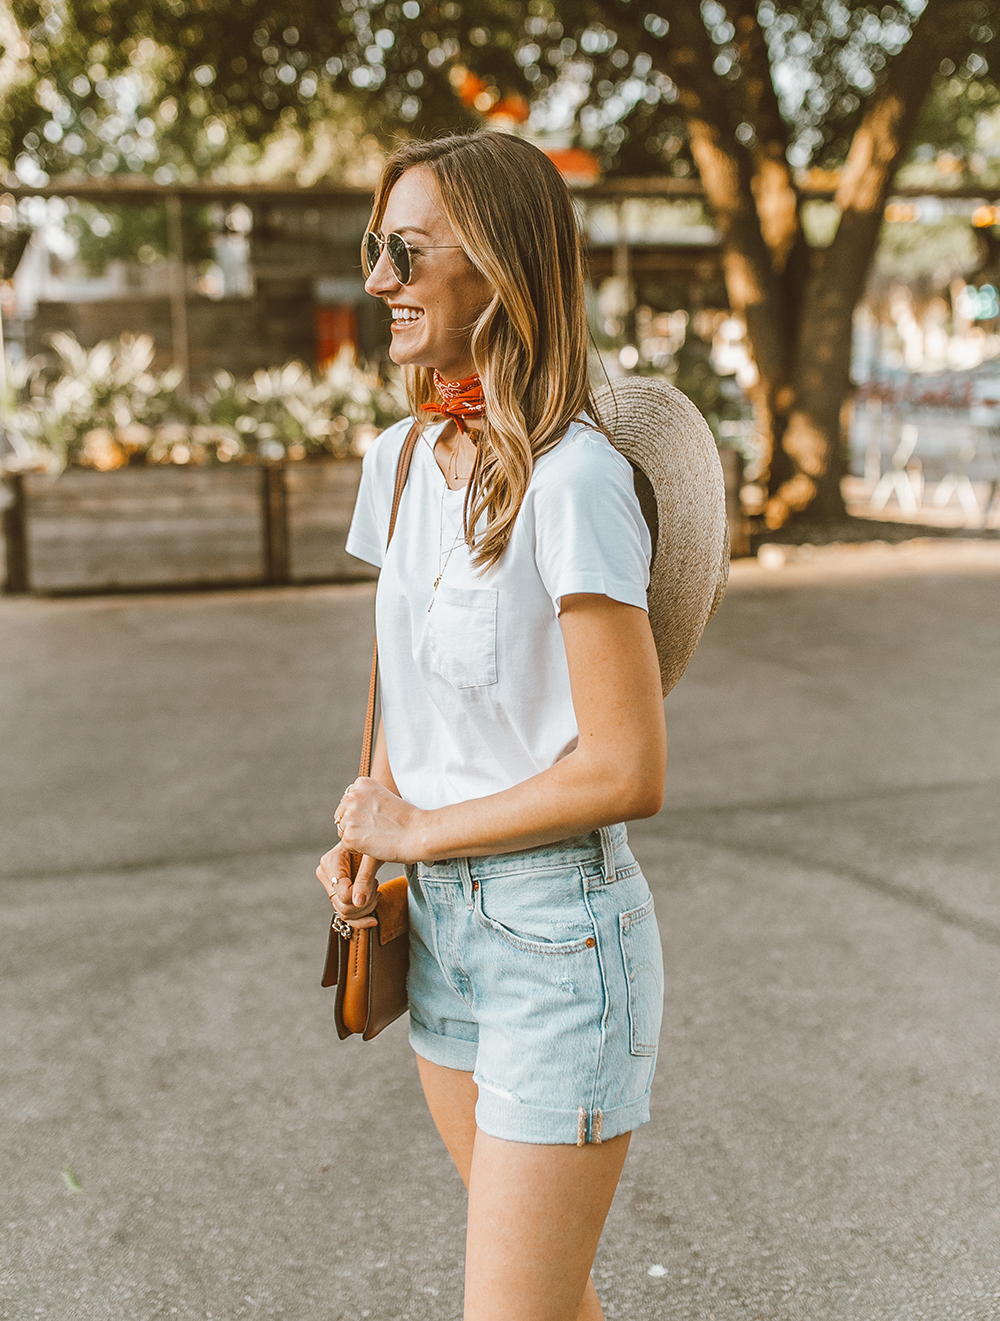 livvyland-blog-olivia-watson-austin-texas-fashion-style-blogger-what-to-wear-levis-501-denim-shorts-festival-outfit-idea-2